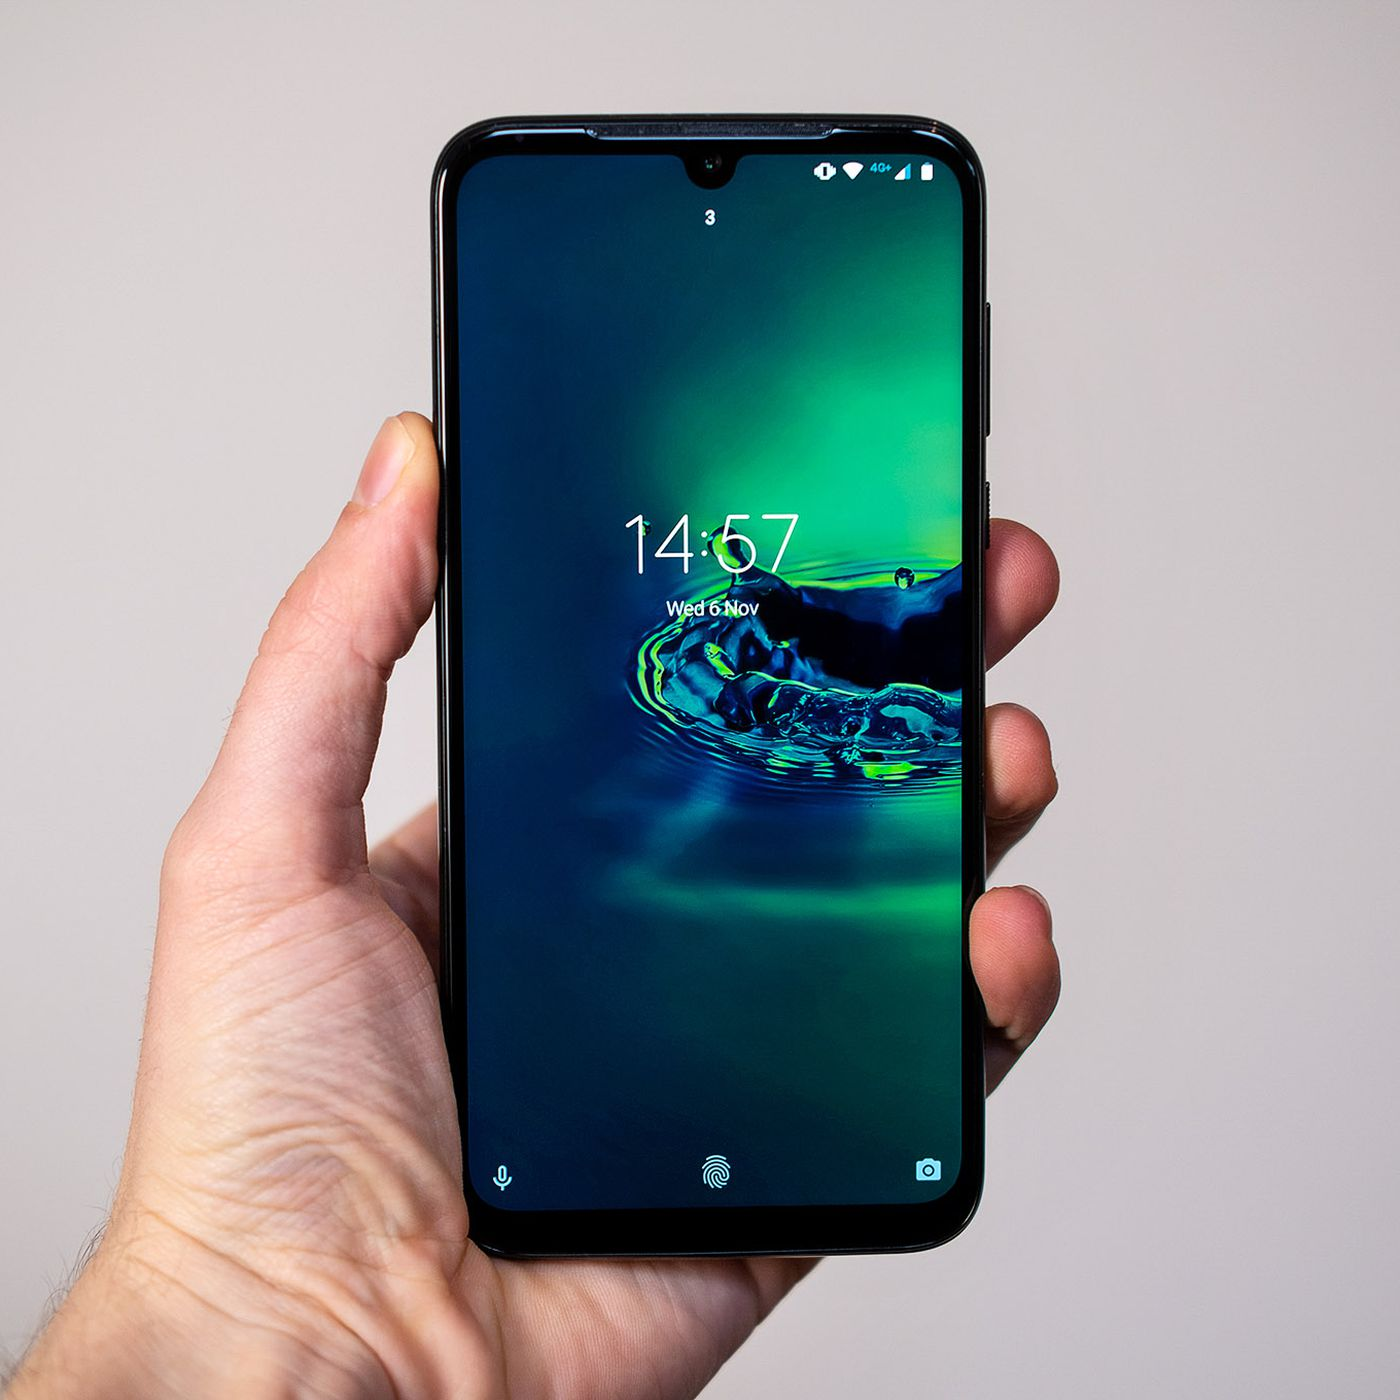 Motorola Moto G8 Plus review: a battery boost for the budget